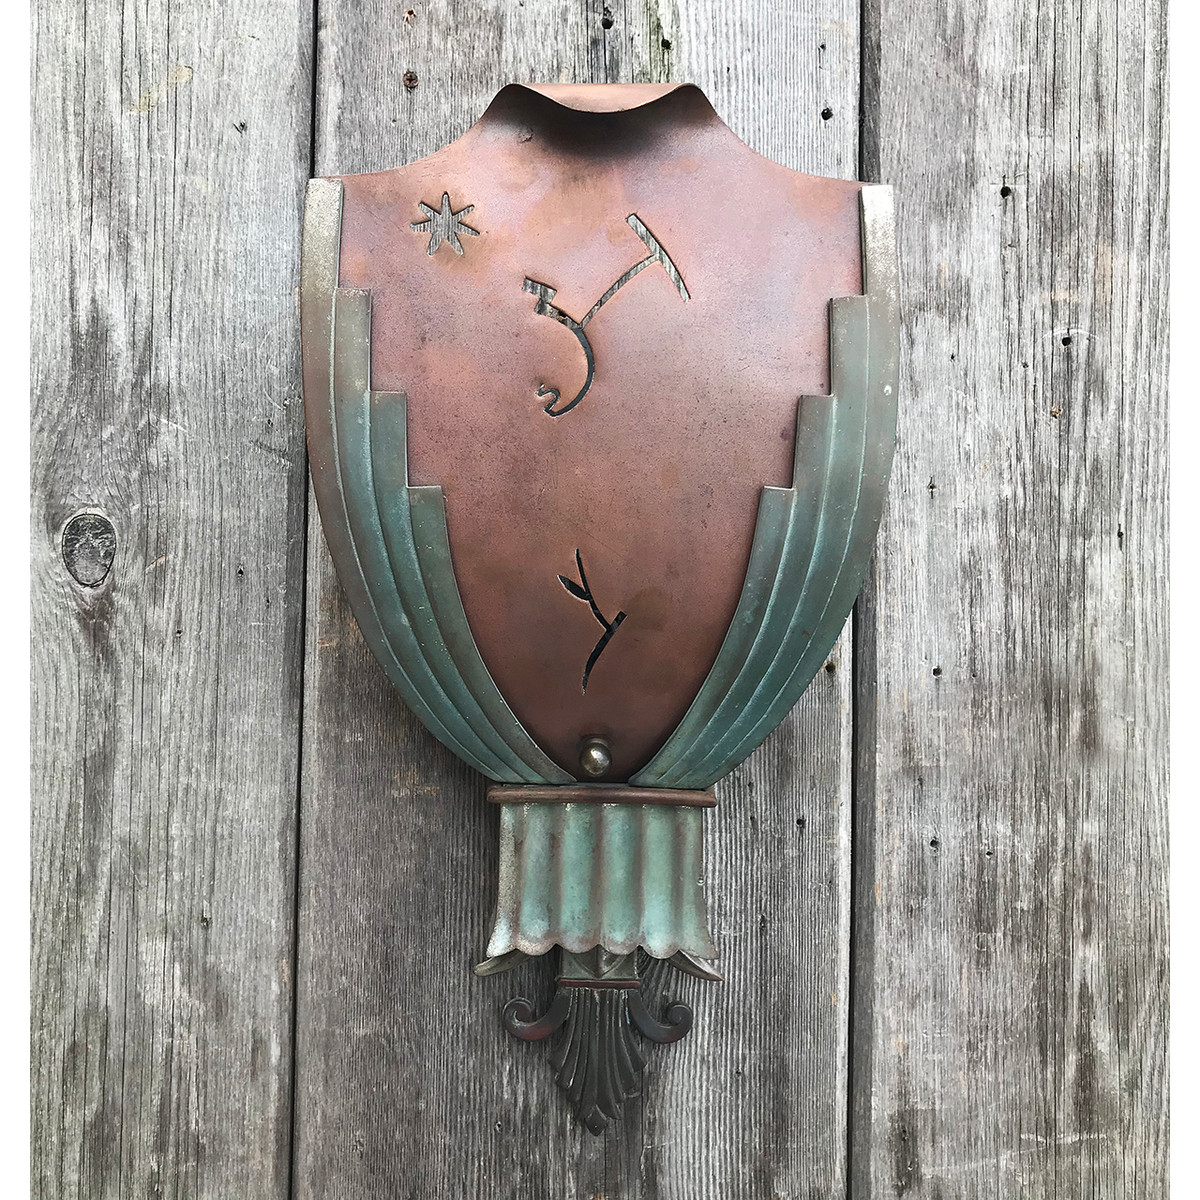 L10770 - Antique Art Deco Mixed Metal Theater Wall Sconce